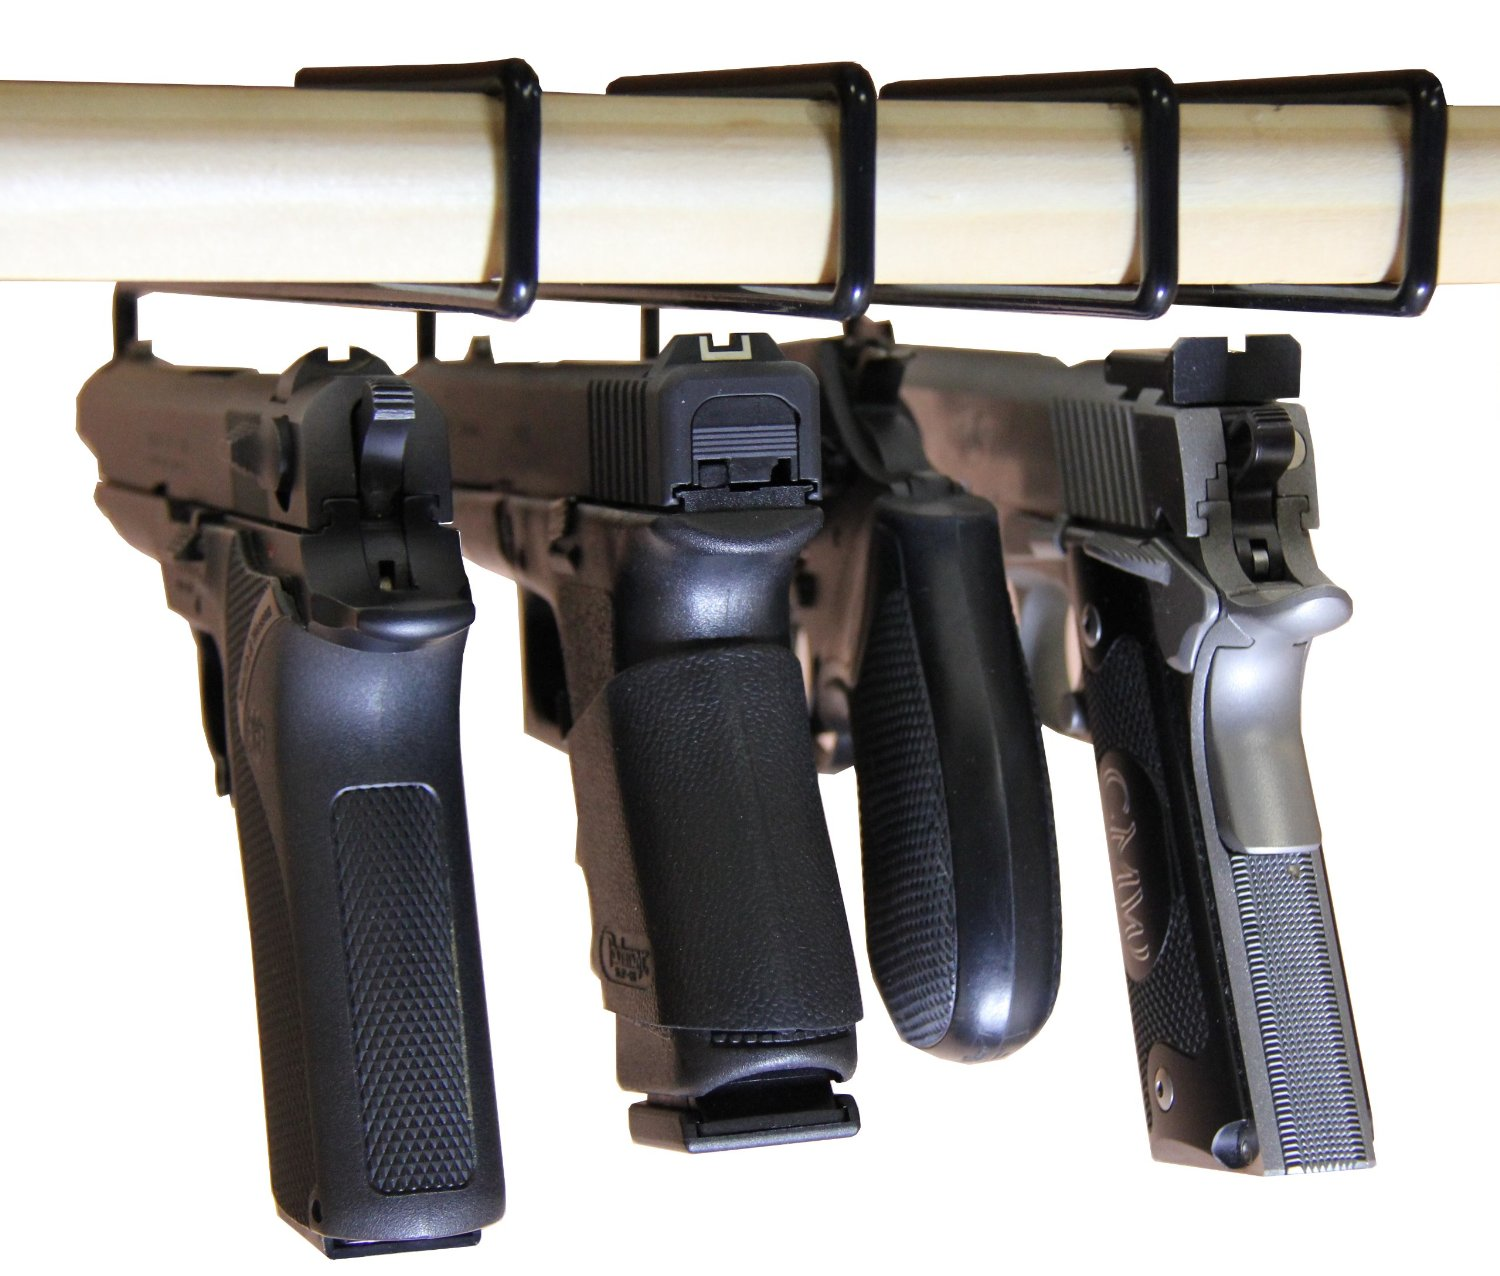 AmeriGun Club SAFETY STORAGE Hanger Pack of 4 Original Handgun - Click Image to Close